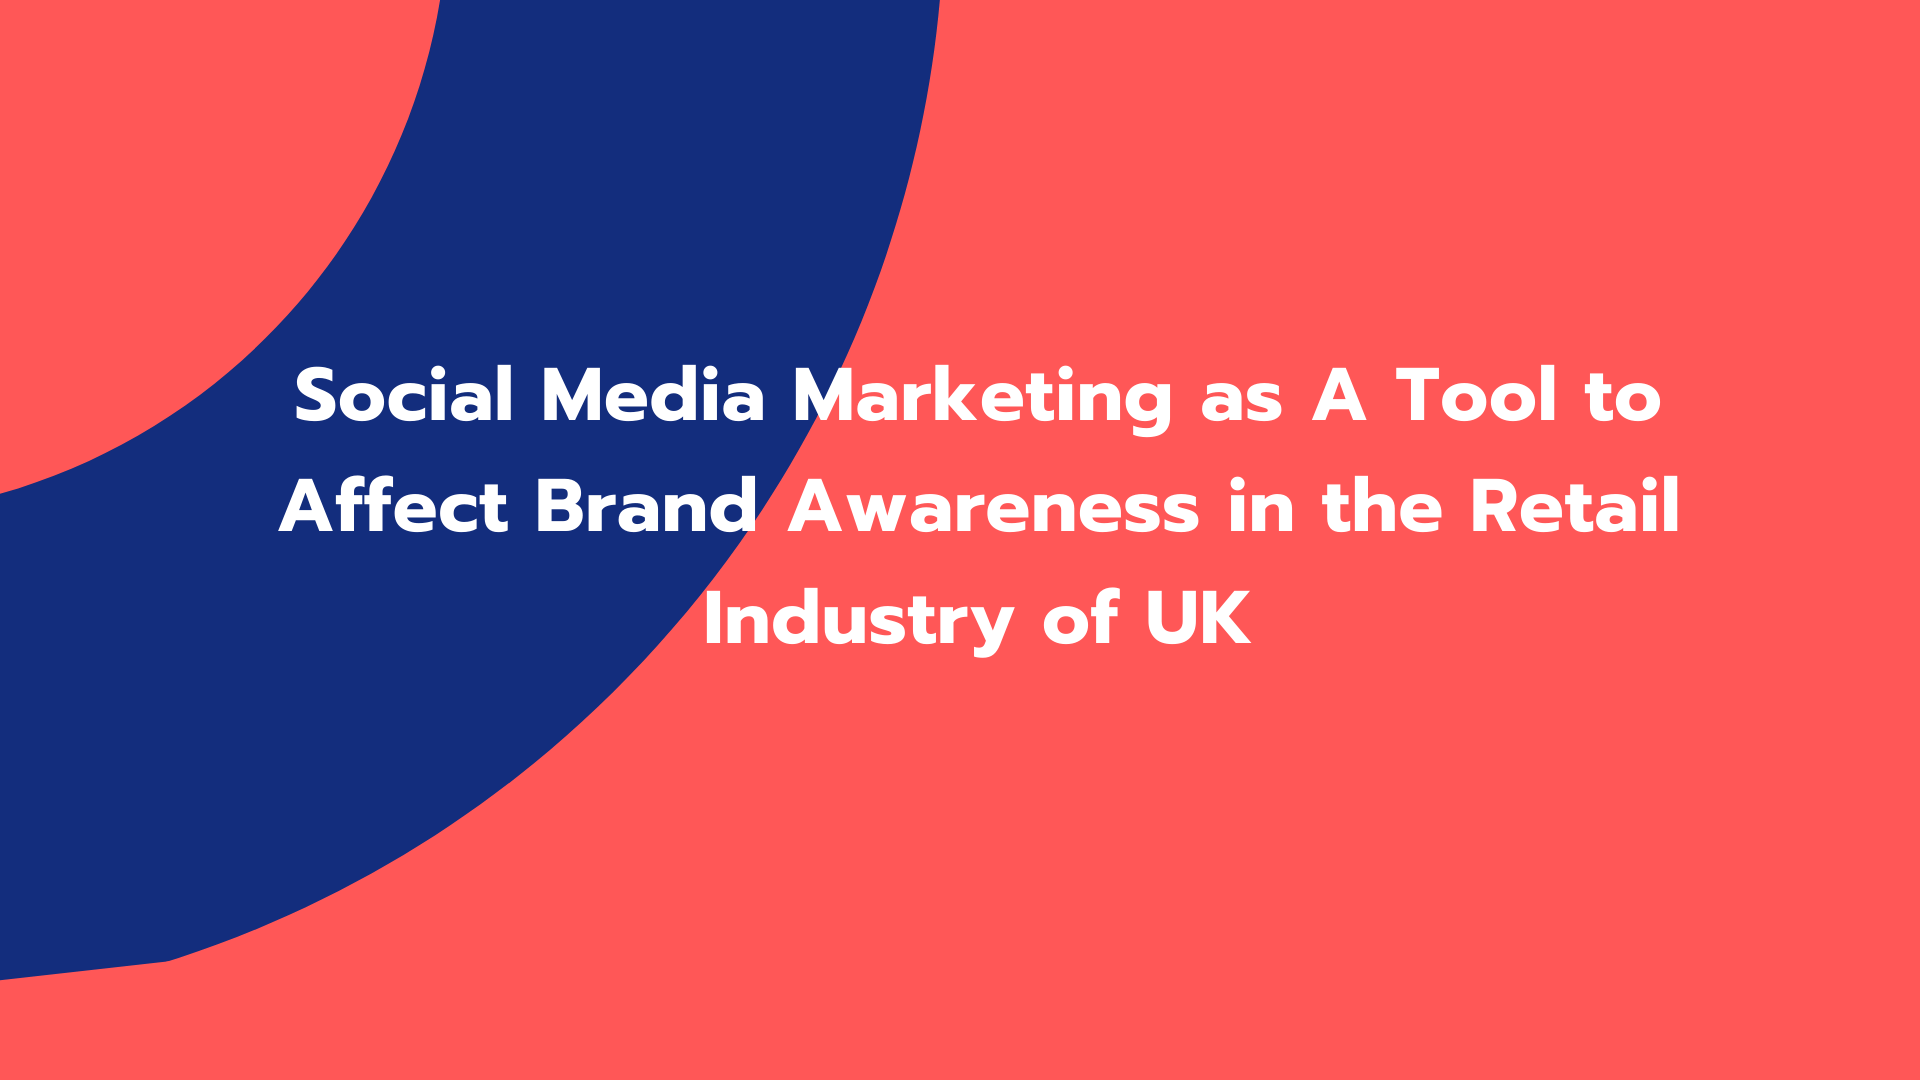 Social Media Marketing as A Tool to Affect Brand Awareness in the Retail Industry of UK